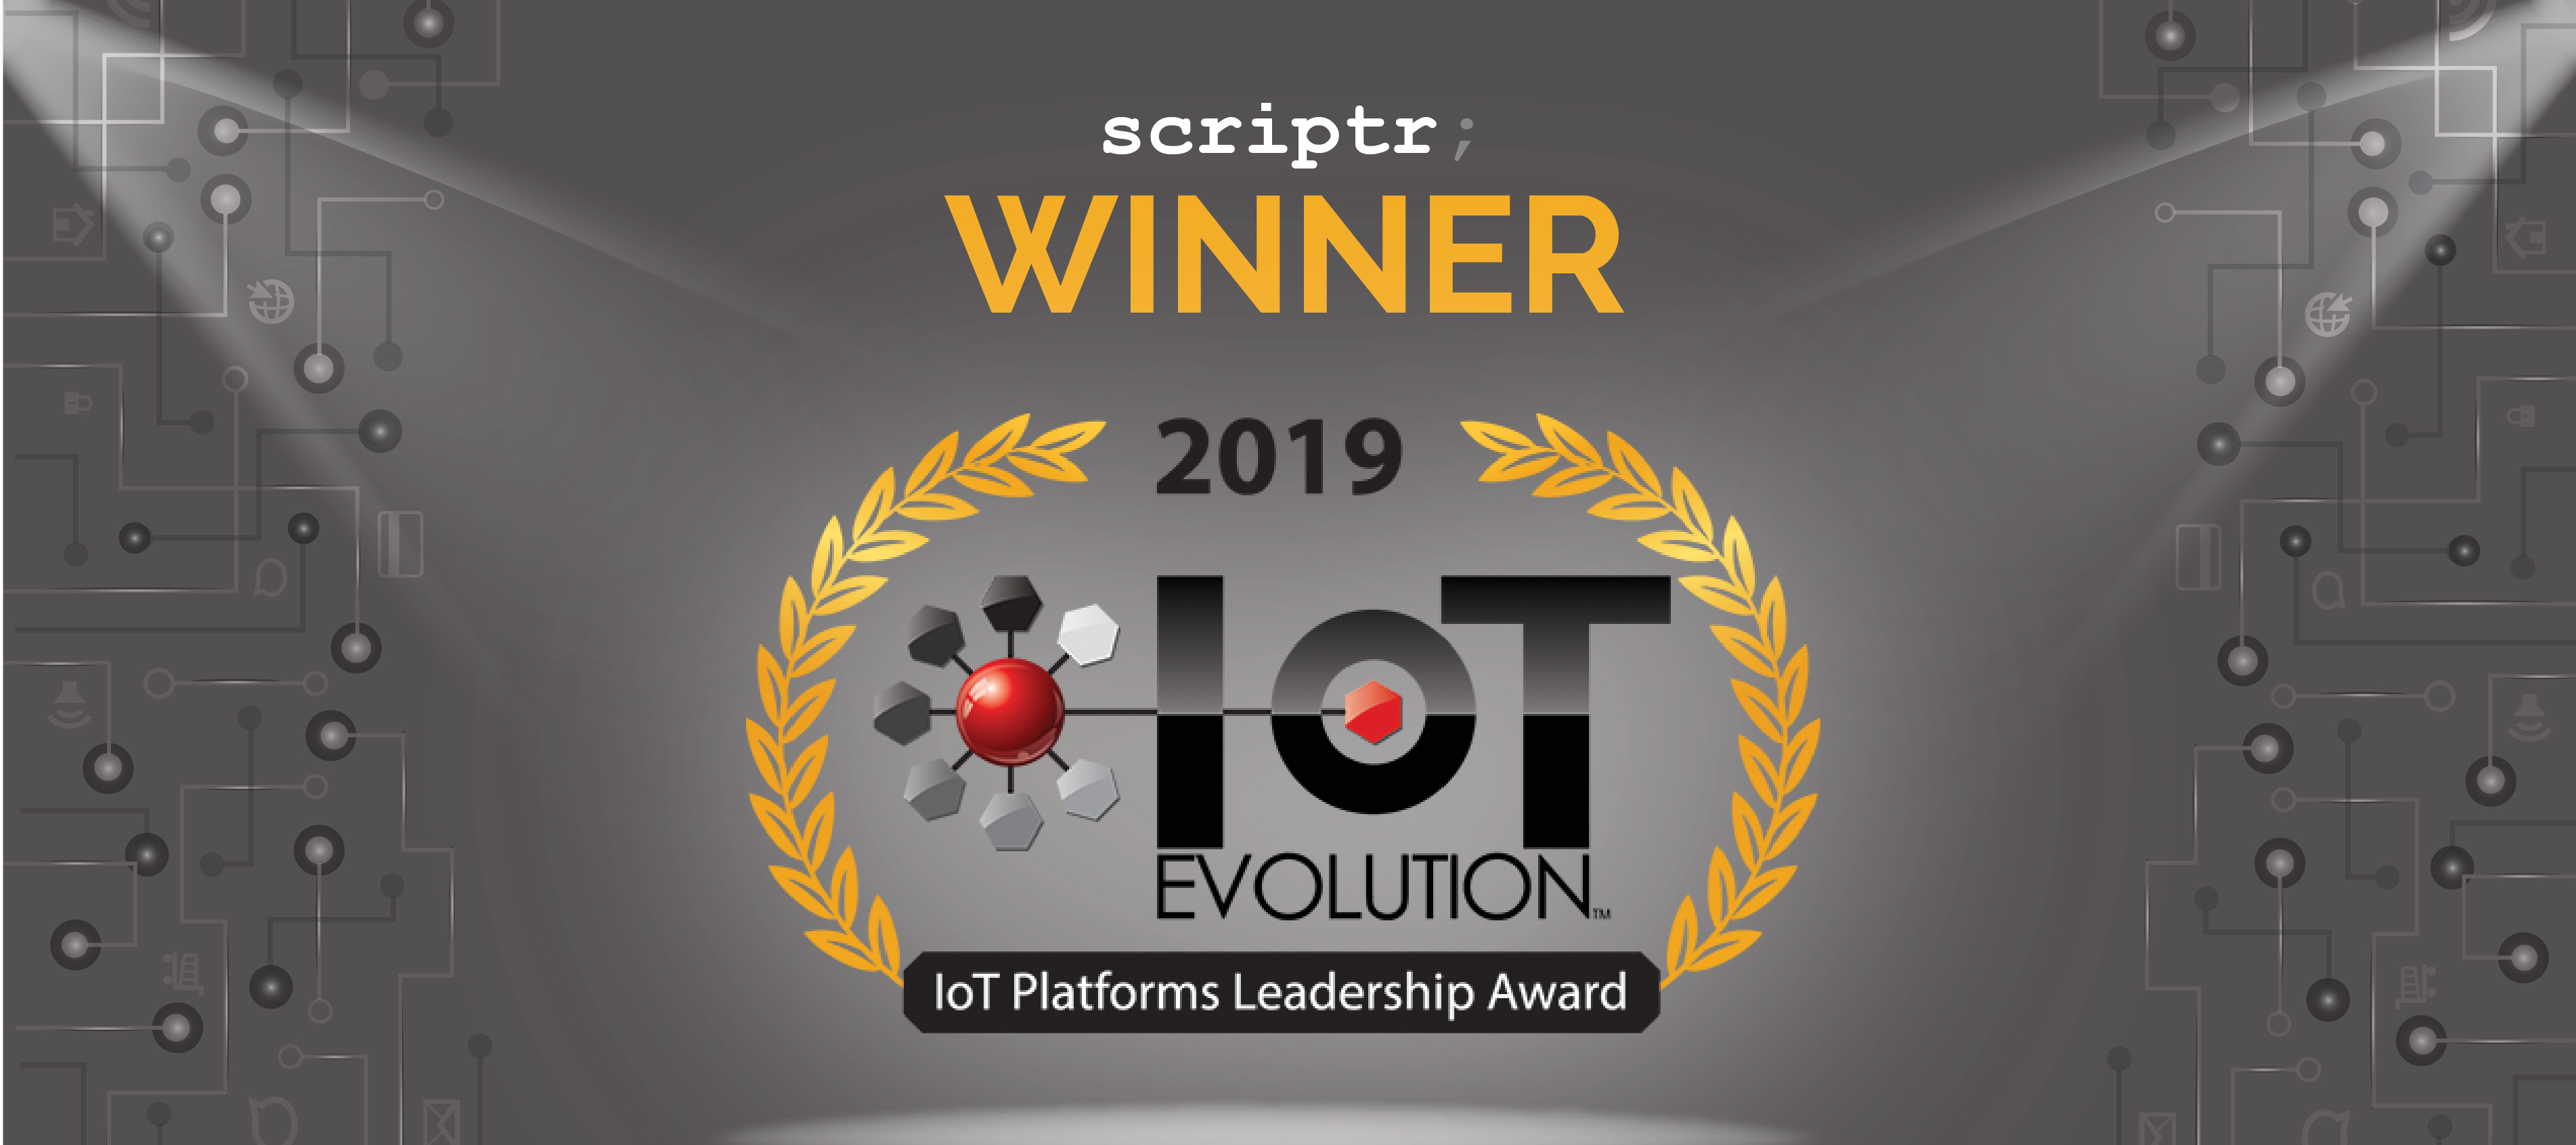 Scriptr.io Receives 2019 IoT Platforms Leadership Award